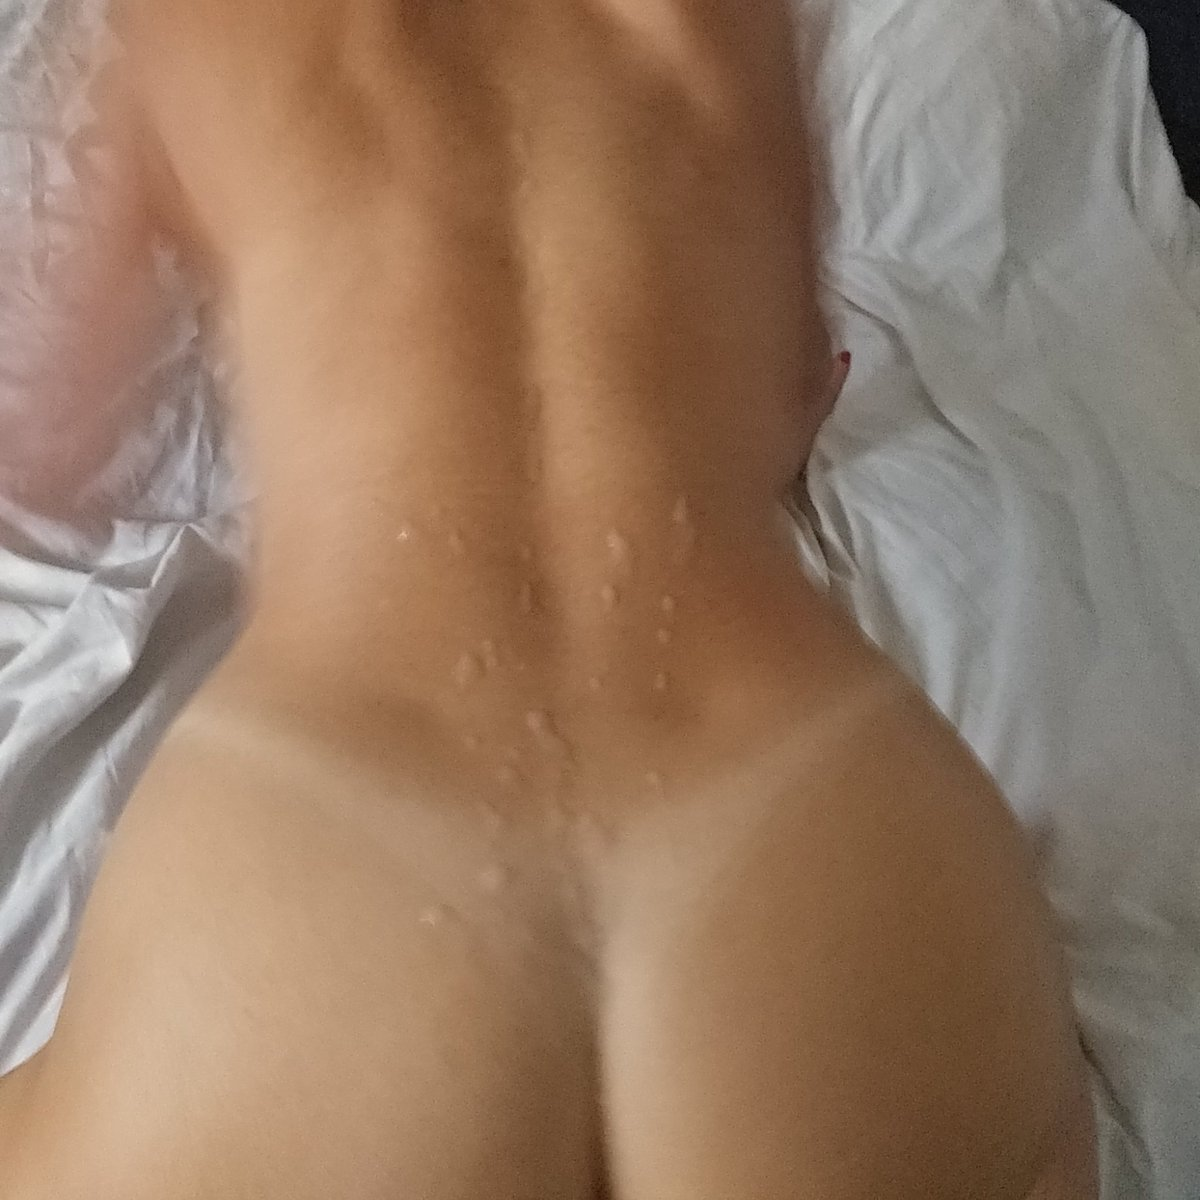 Sunday afternoon,  with a cummy mess  all over my back 😉 aKJiujX7WM